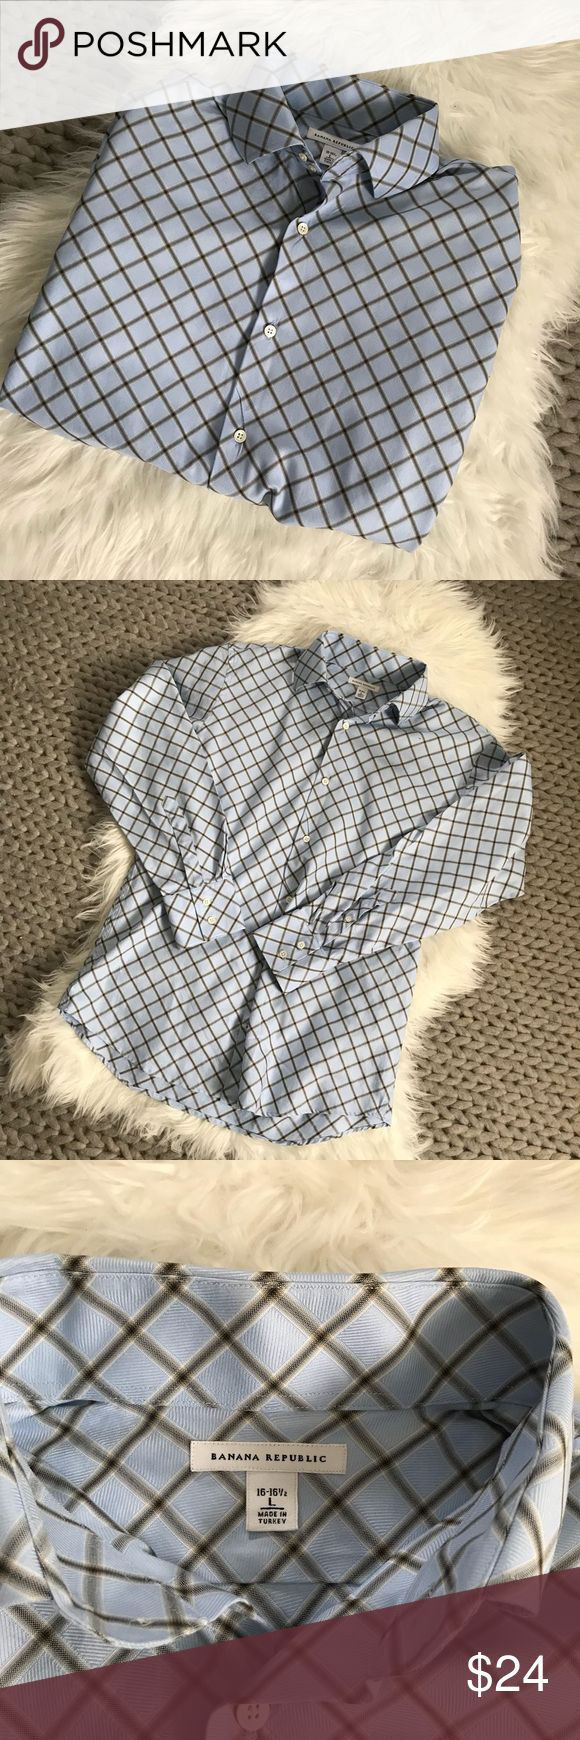 """{ Banana Republic } Blue & Beige Non Iron Shirt { Banana Republic } Blue & Beige Non Iron Shirt. 100% Cotton. Excellent condition. No stains, rips, holes or tears. Non smoking home.  Pit to Pit :23"""" Length: 28"""" Banana Republic Shirts Dress Shirts"""